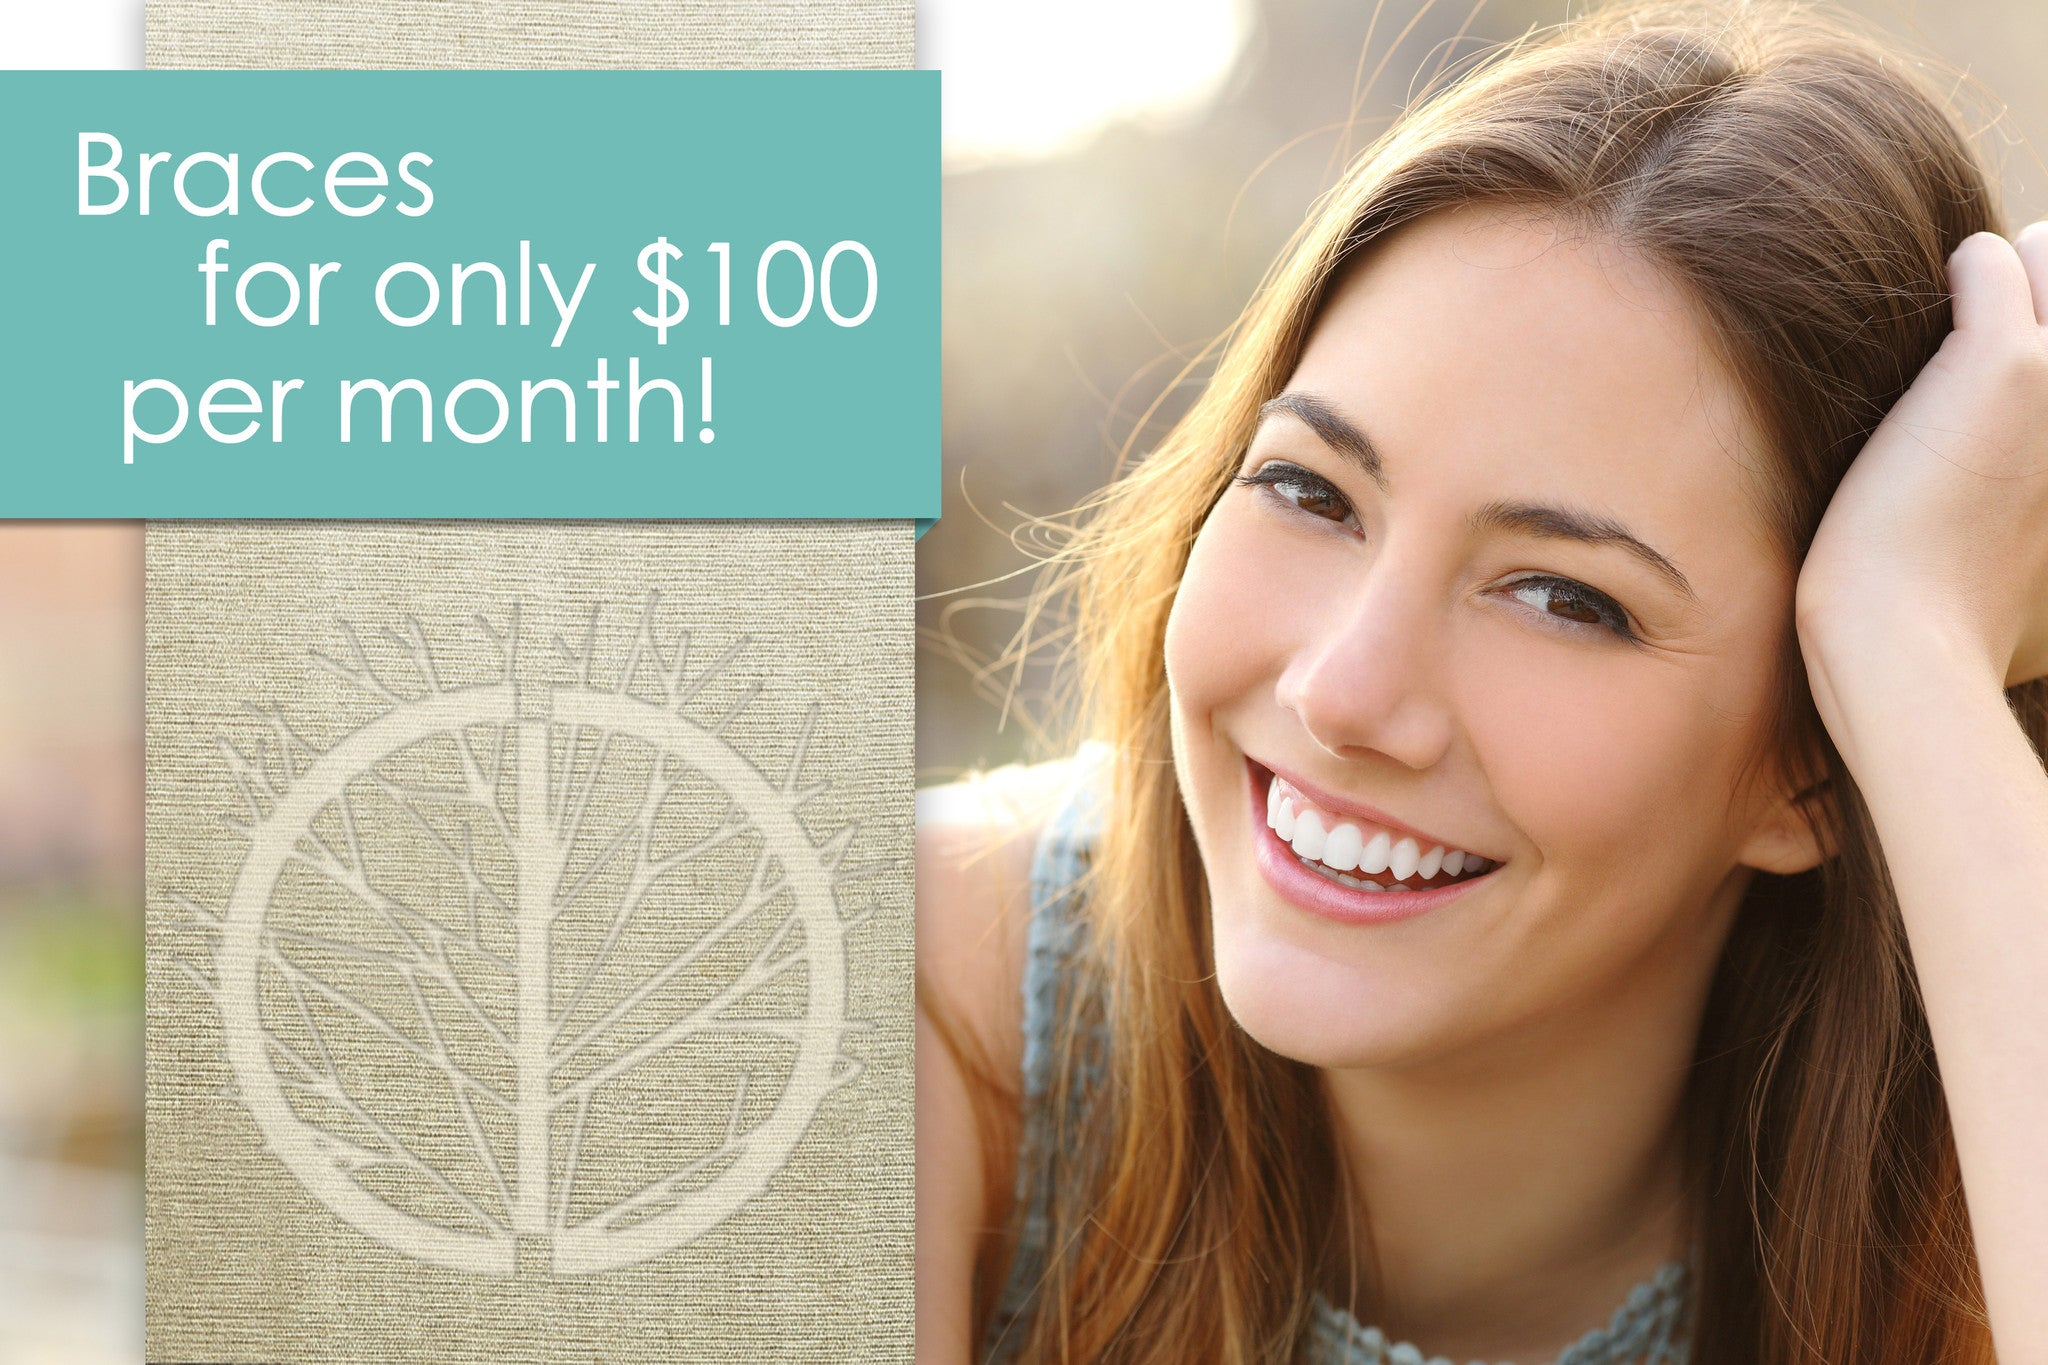 Get Braces for $100/mo in Bend, Oregon from Distinctive Dentistry